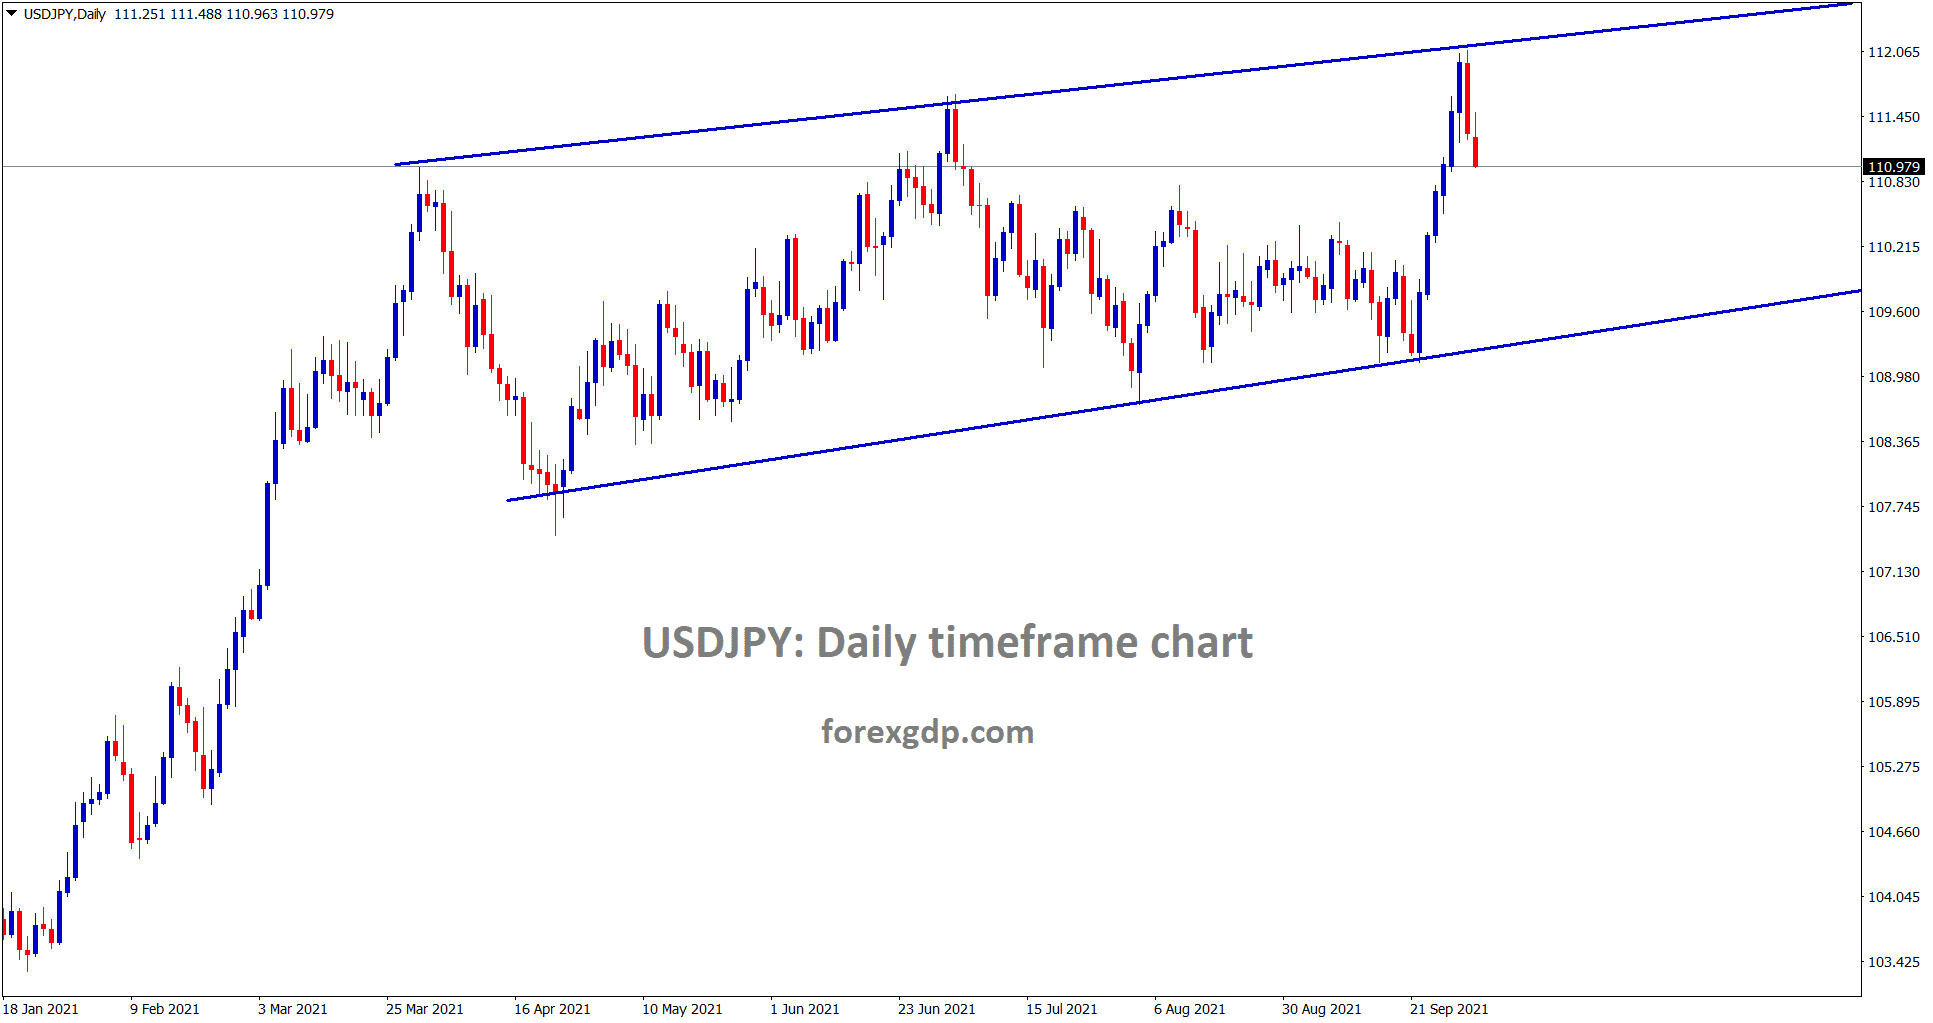 USDJPY is falling from the higher high of the channel line